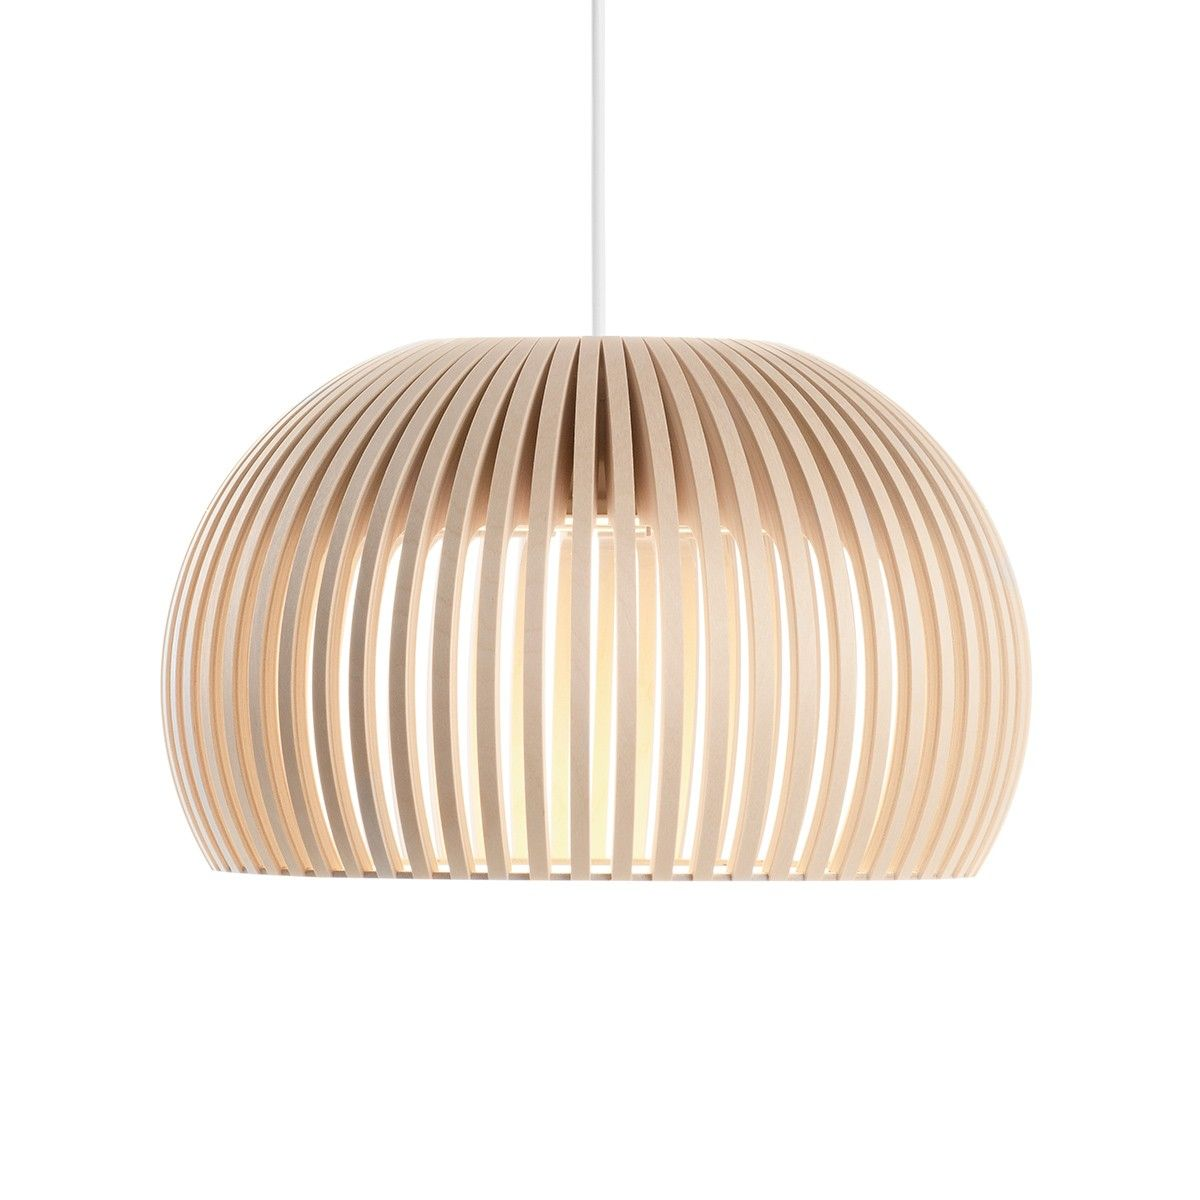 La forme arron de la suspension en bois Atto de Secto Design